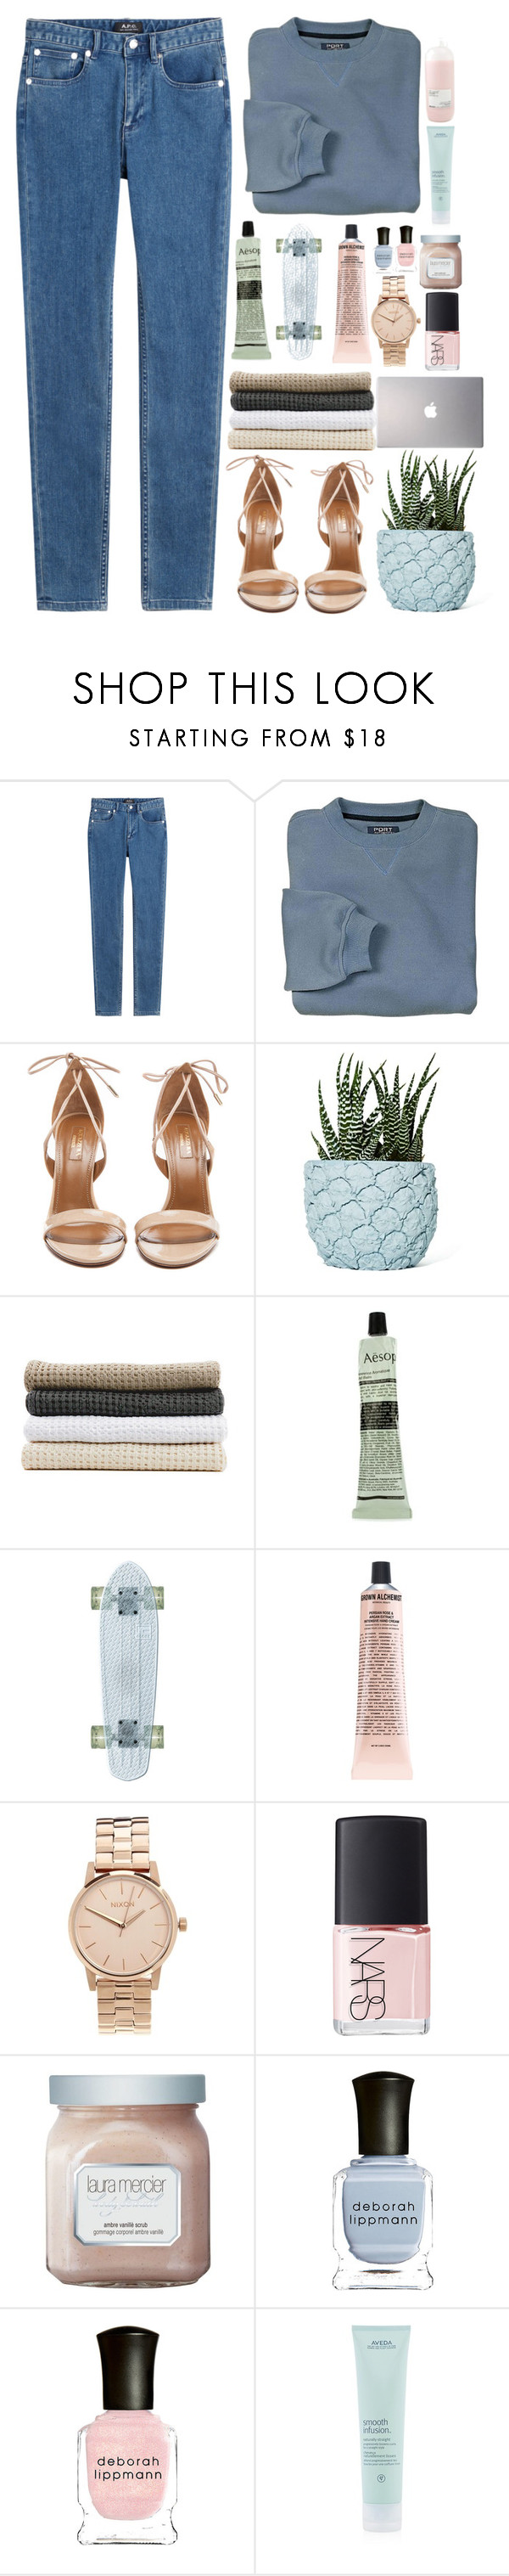 """""""""""You only live once, but if you do it right, once is enough."""""""" by dzchocolatess ❤ liked on Polyvore featuring A.P.C., Aquazzura, Chen Chen & Kai Williams, Abyss & Habidecor, Aesop, Samsung, Grown Alchemist, Nixon, NARS Cosmetics and Laura Mercier"""